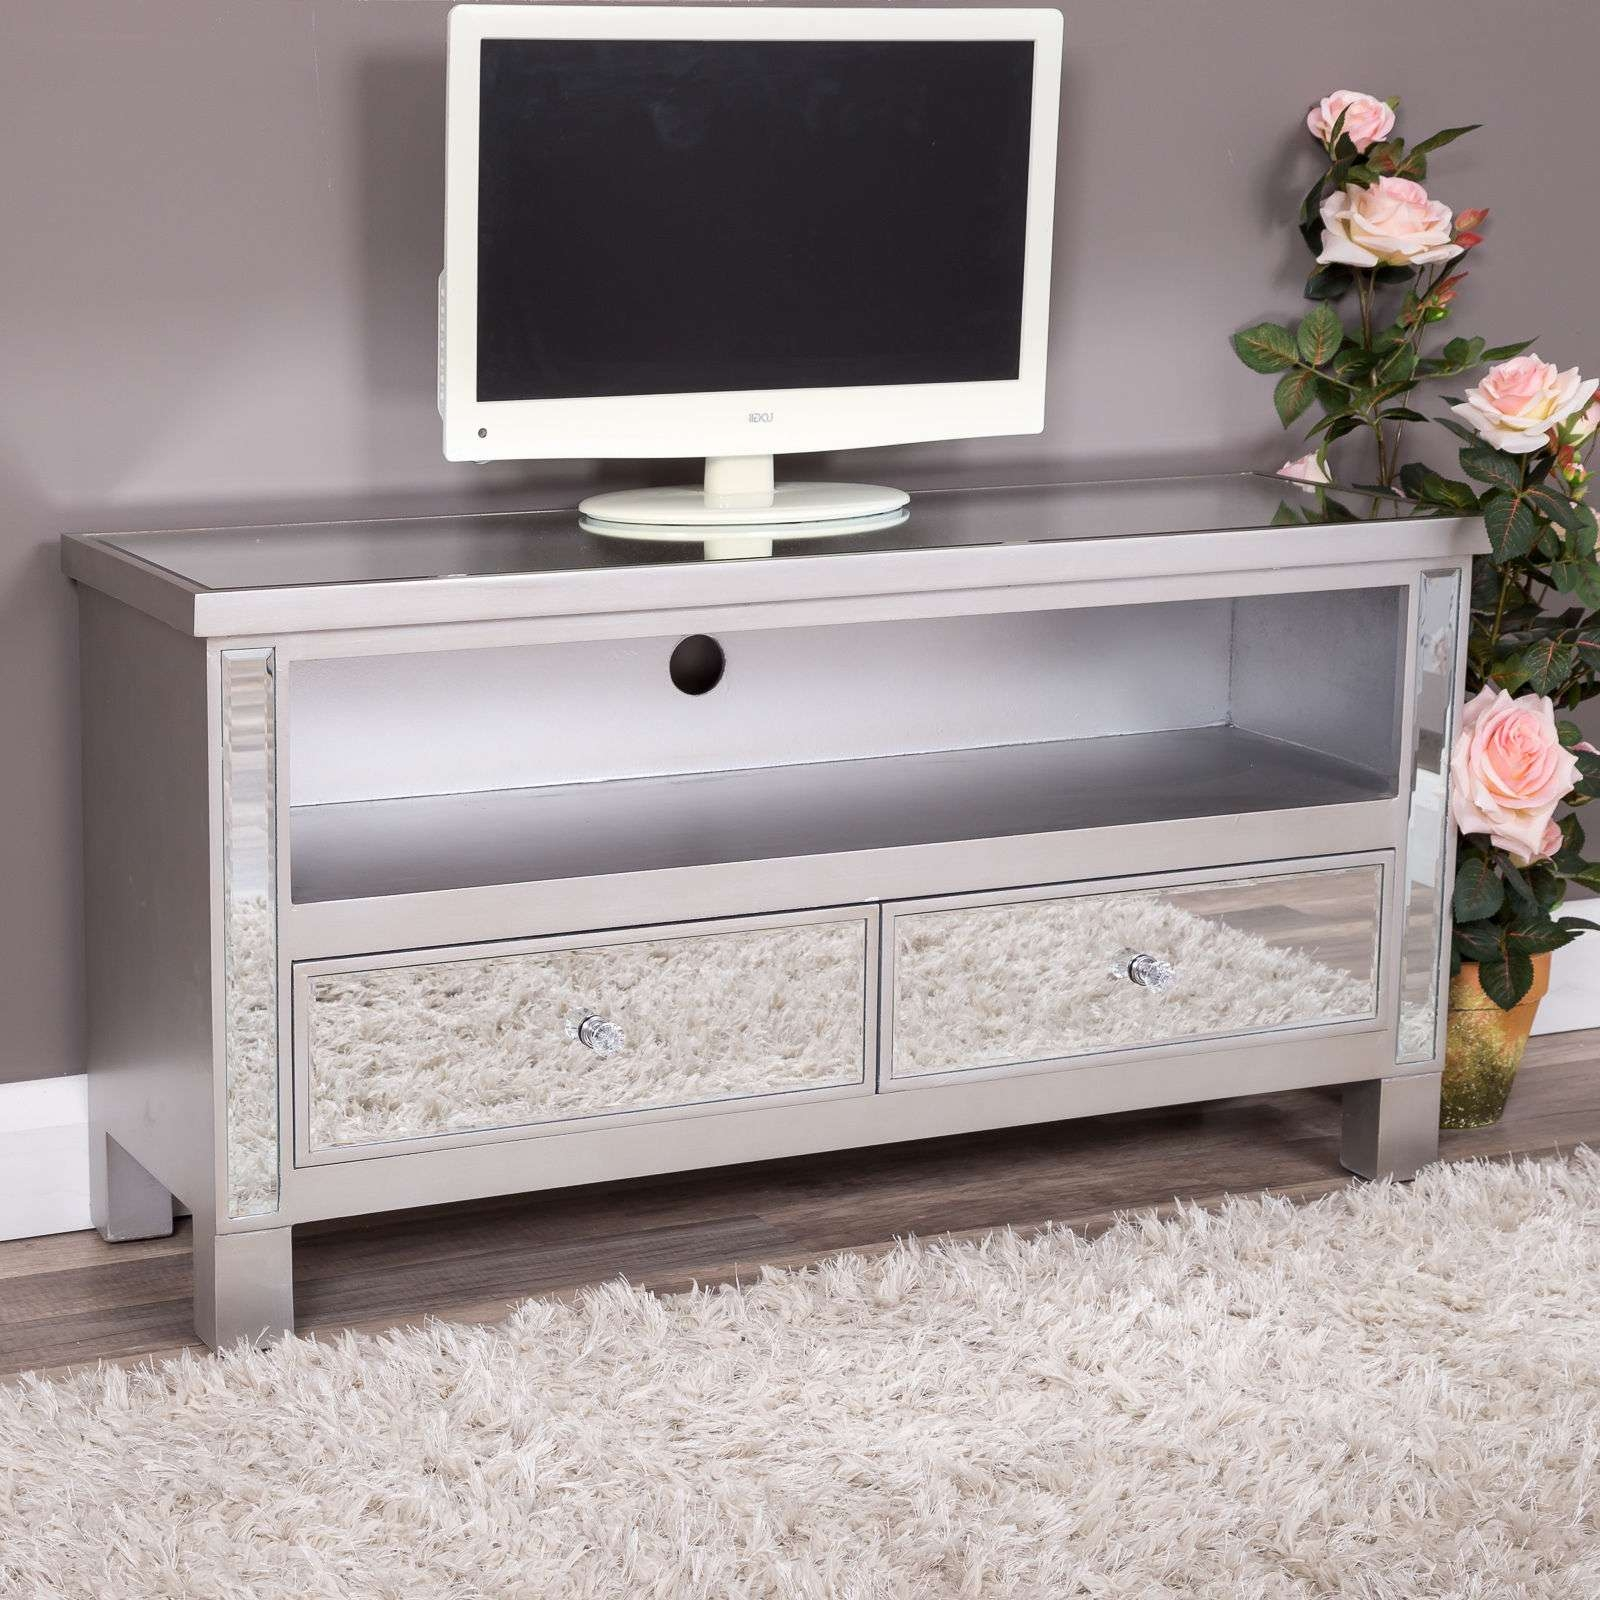 Mirrored Tv Stand | Ebay Inside Silver Corner Tv Stands (View 12 of 15)